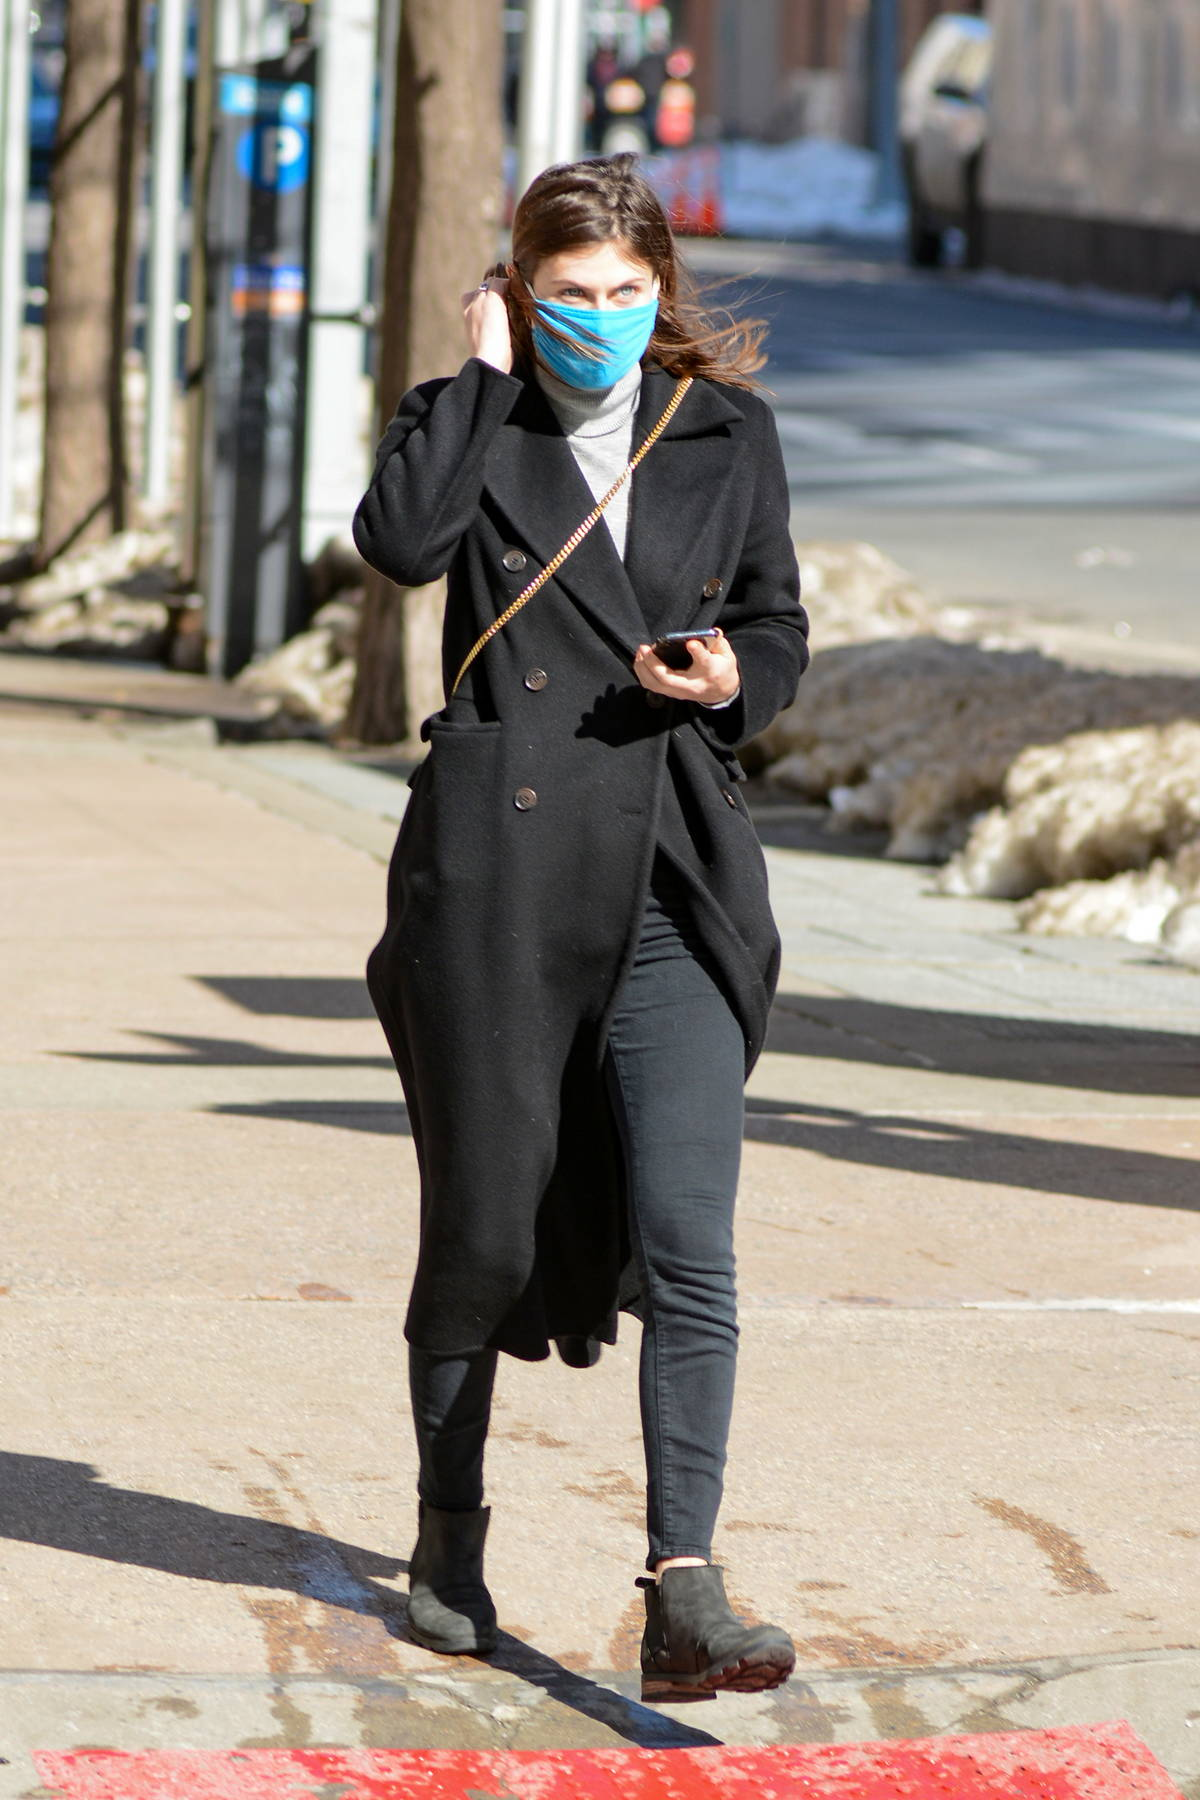 Alexandra Daddario steps out wearing a black overcoat on a windy day in New York City